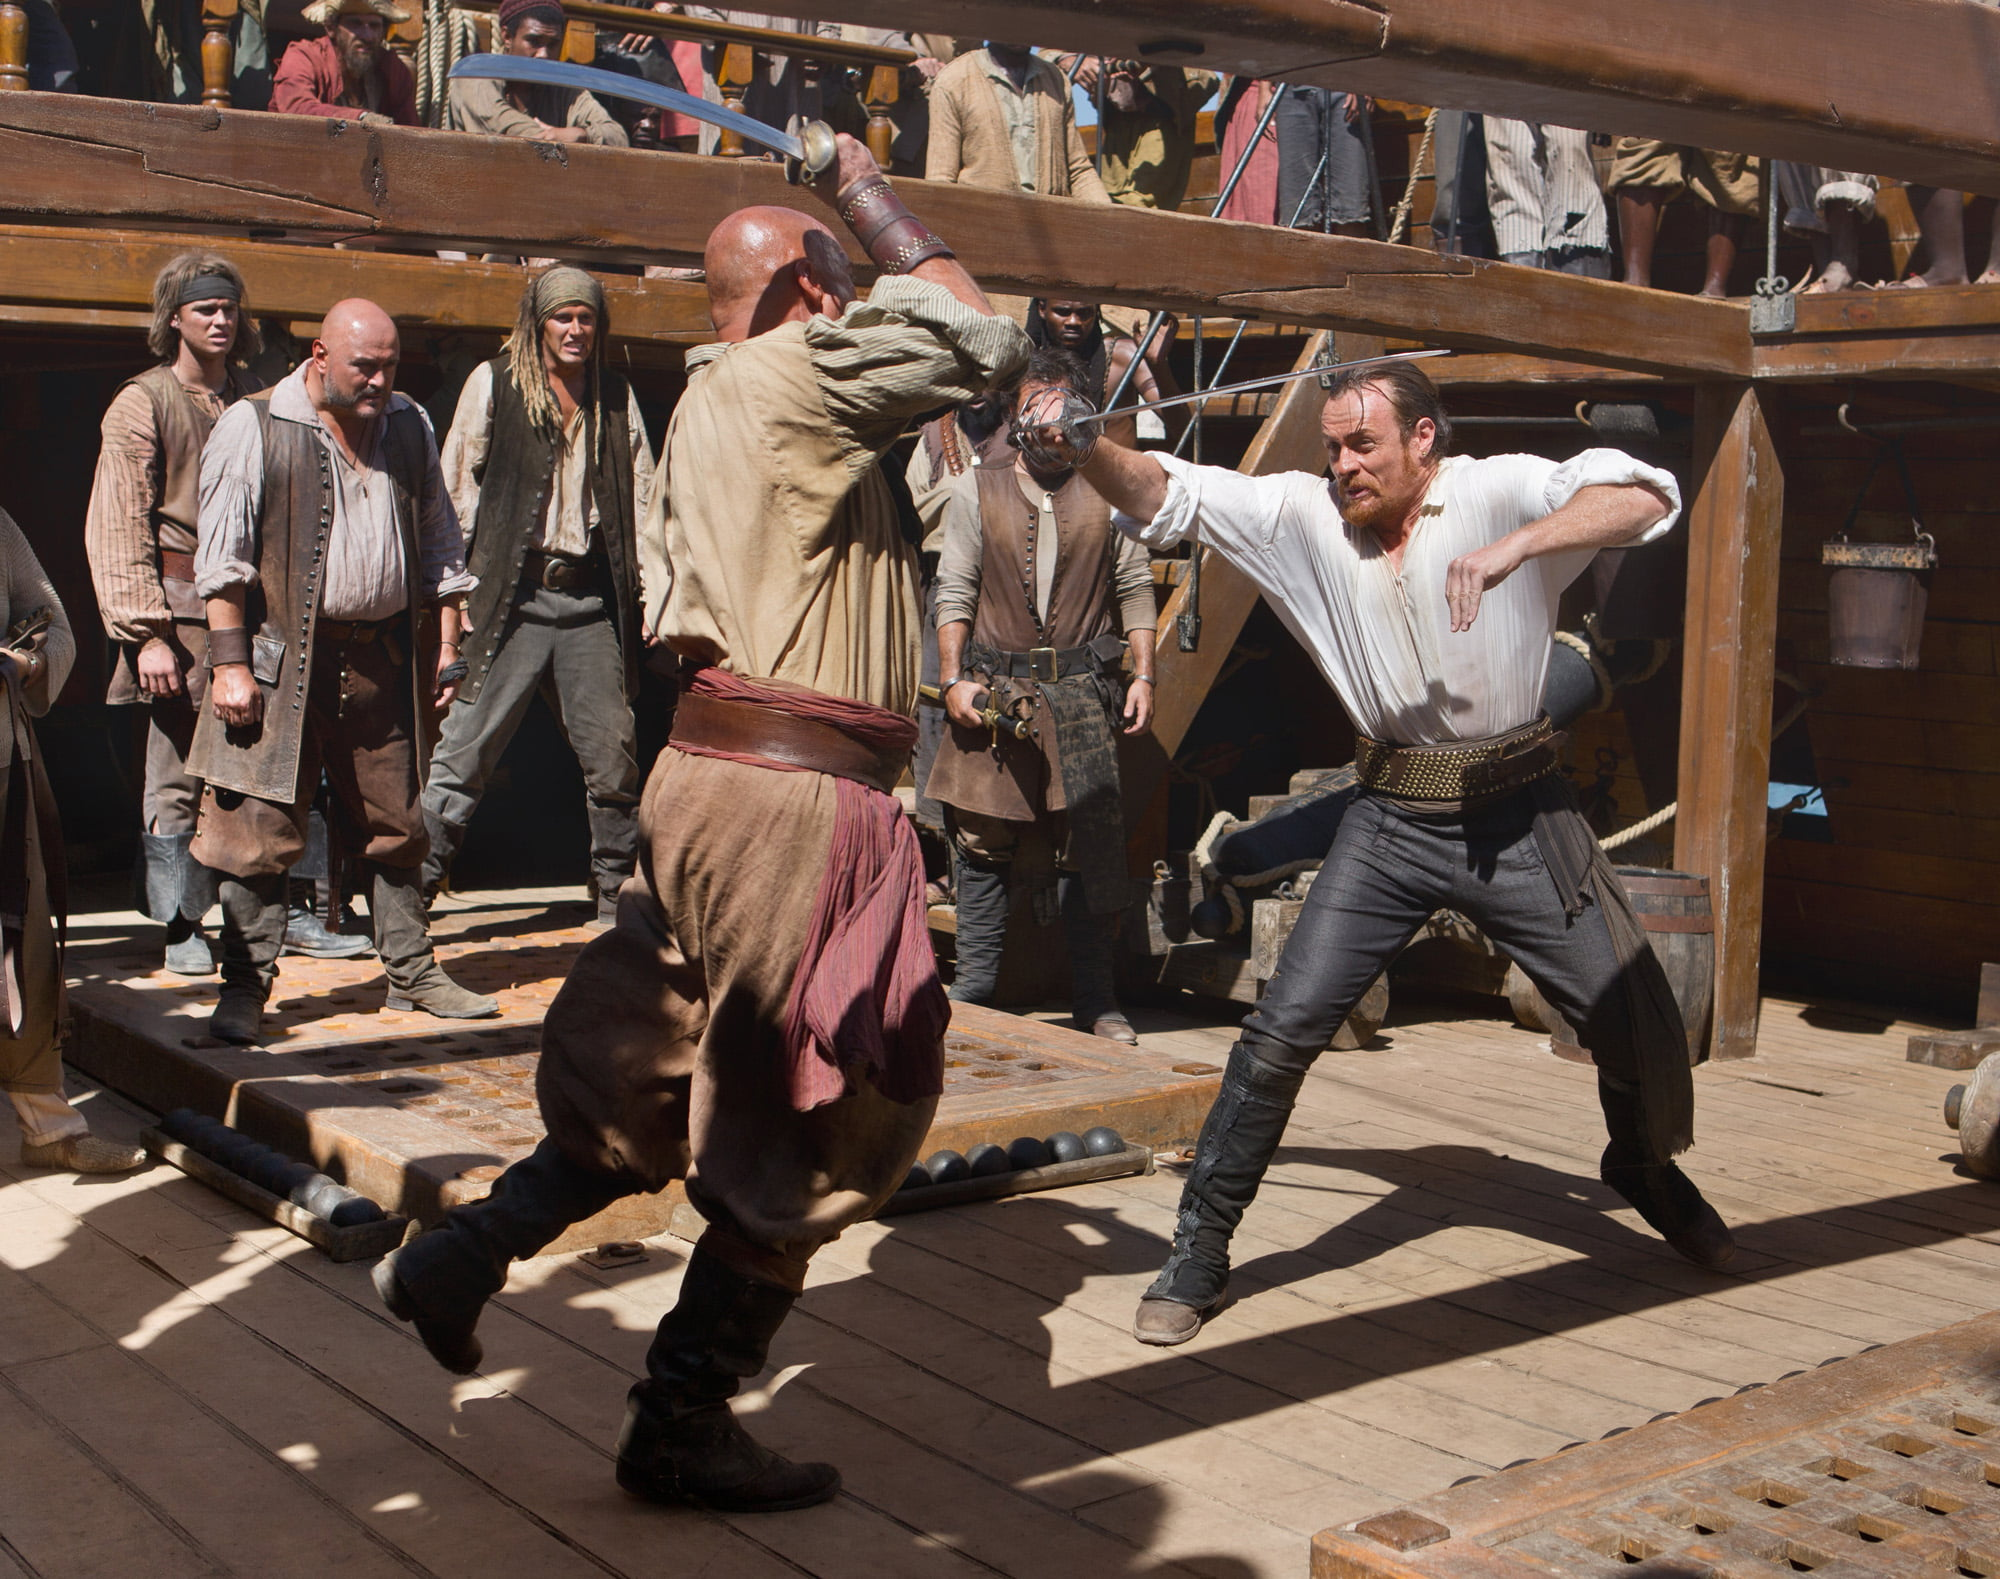 Scene from Black Sails